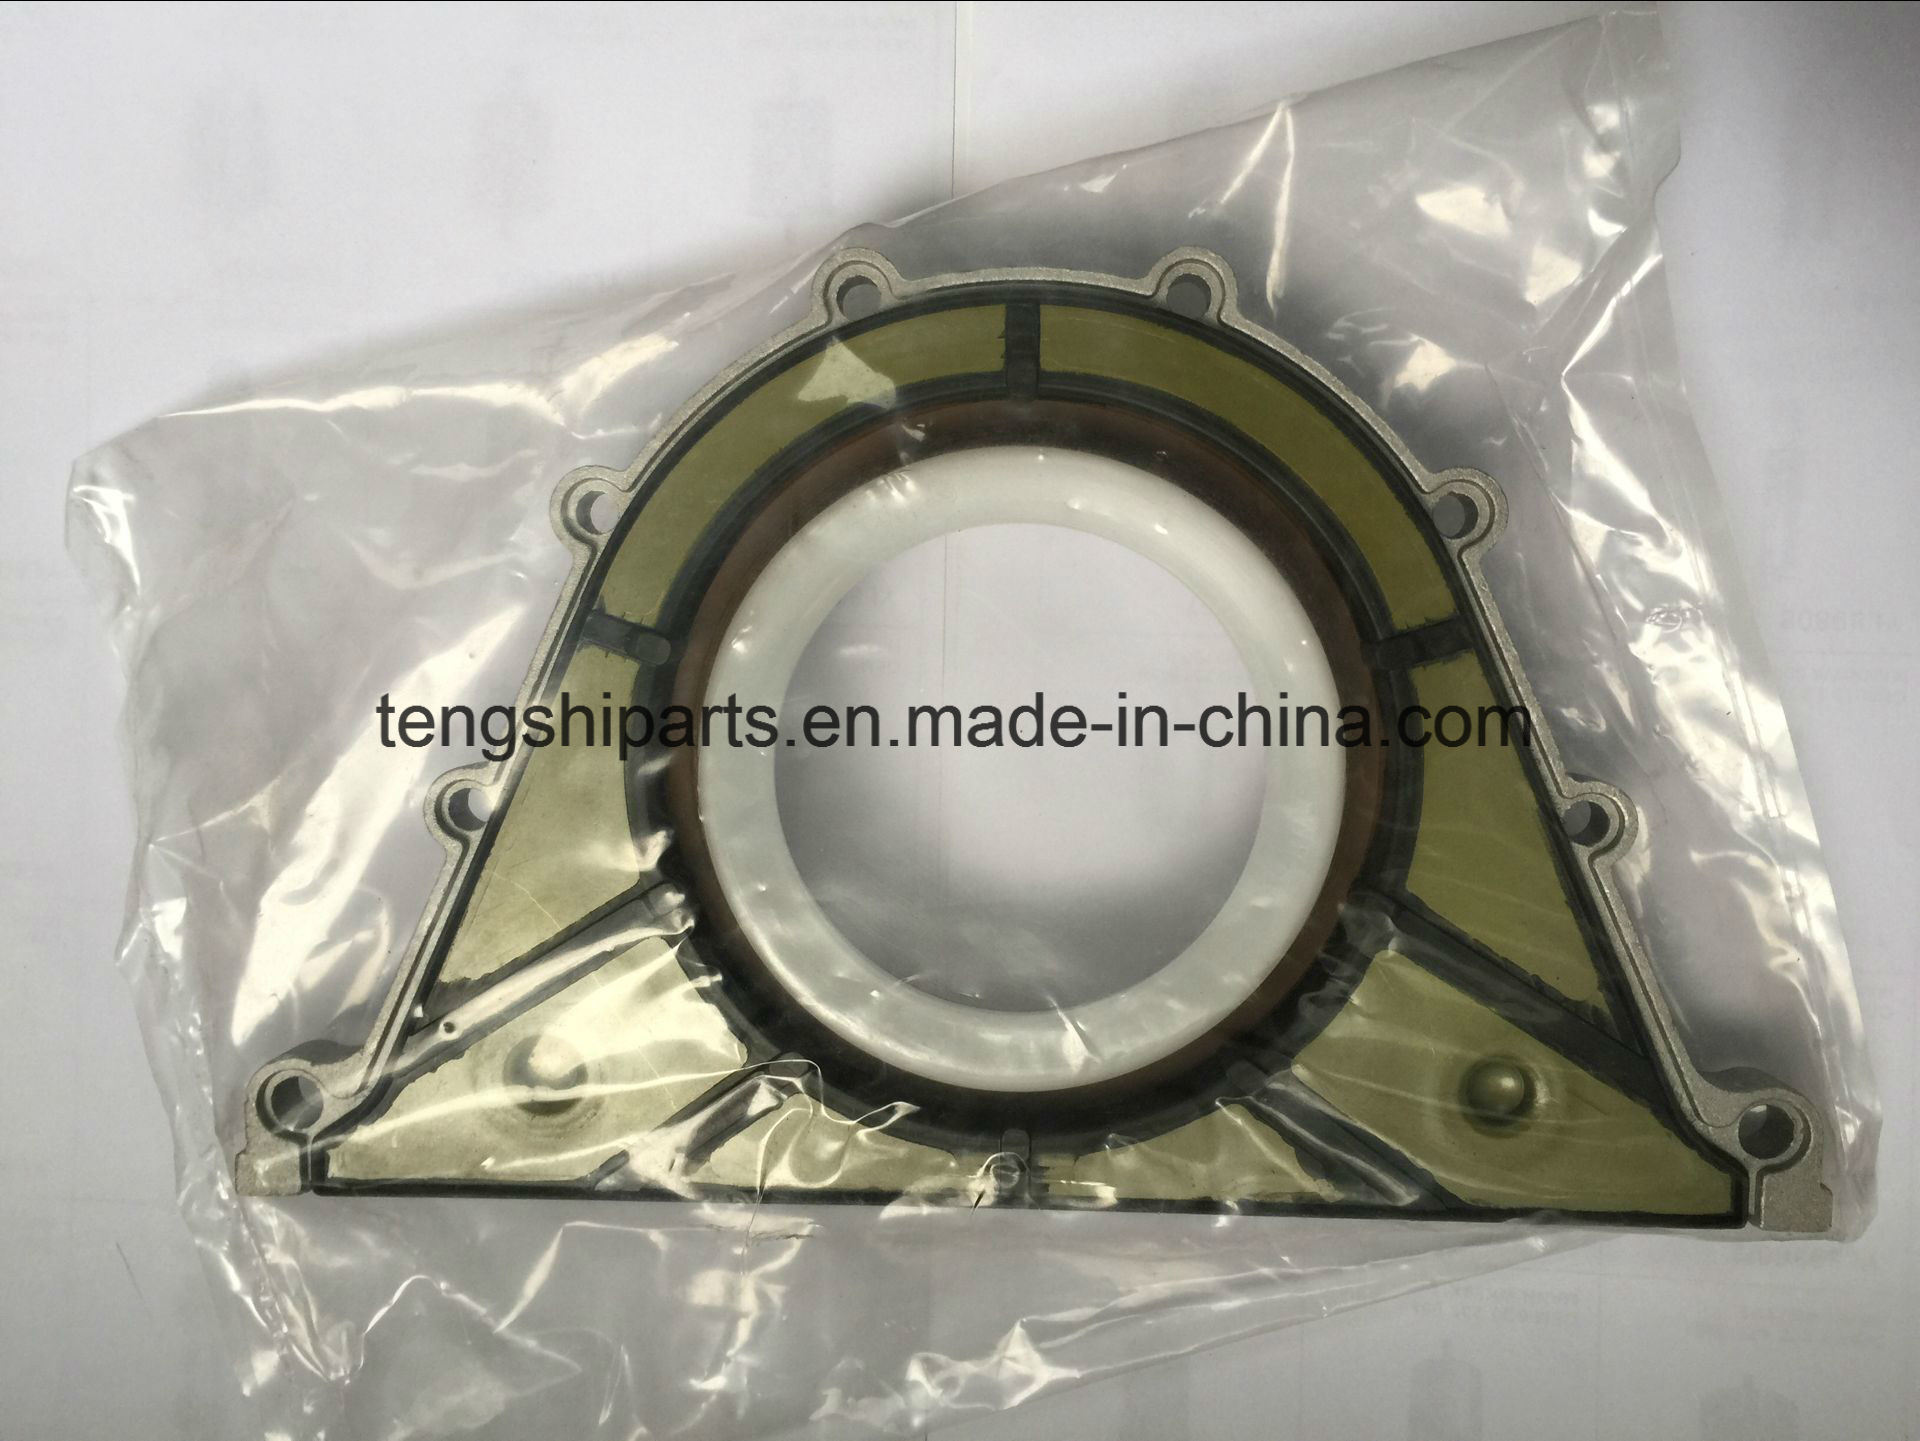 Crankshaft Oil Seal for BMW X5 (E70)